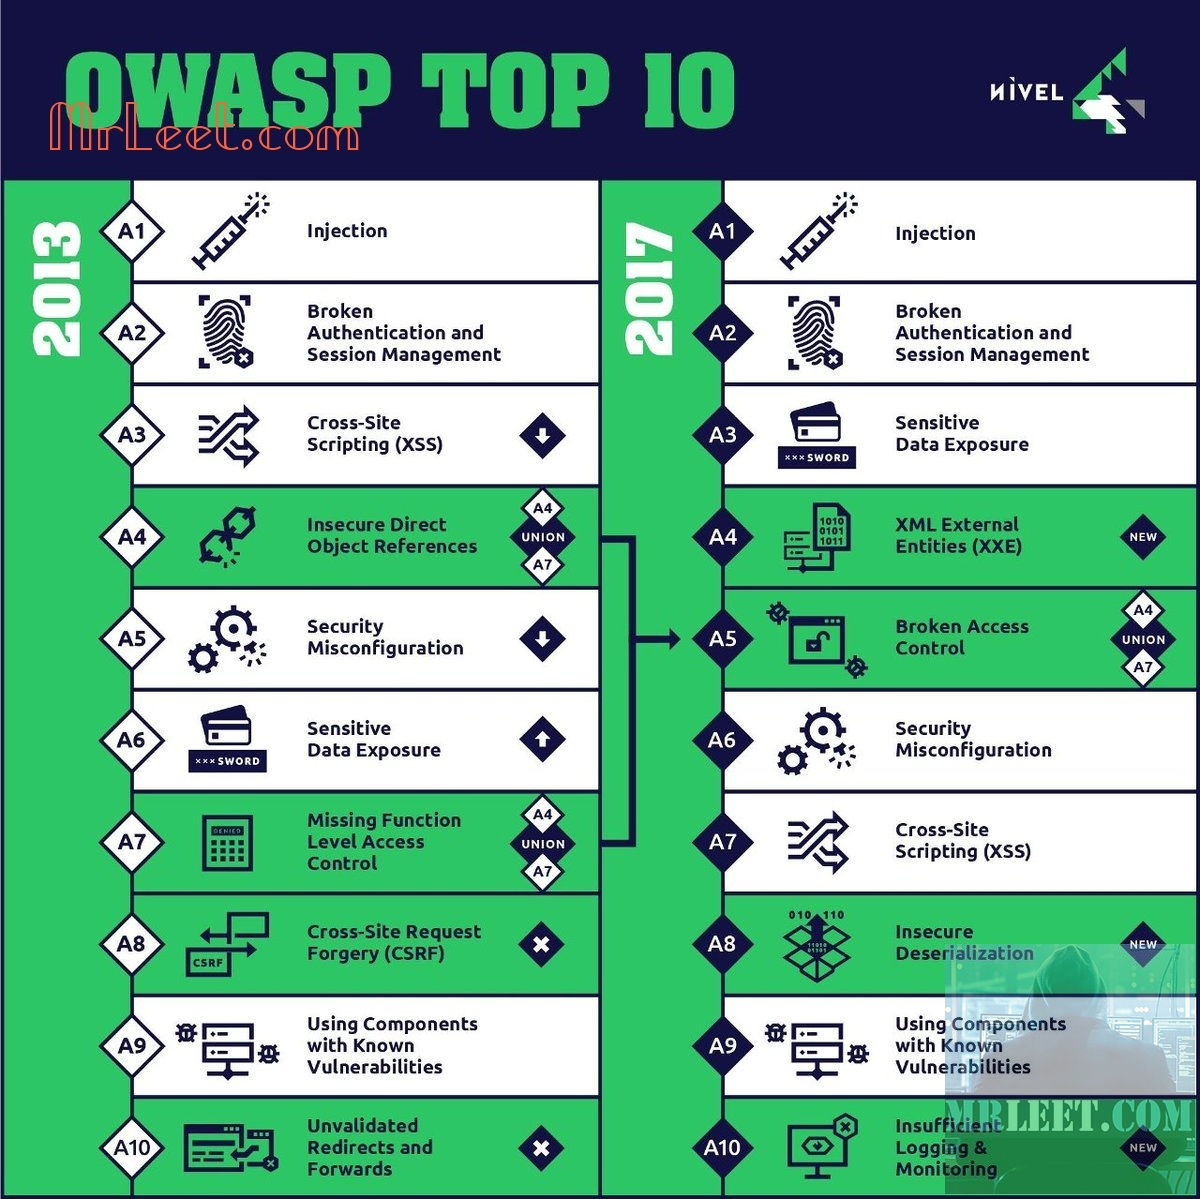 owasp top 10 2013 vs 2017 explained_2